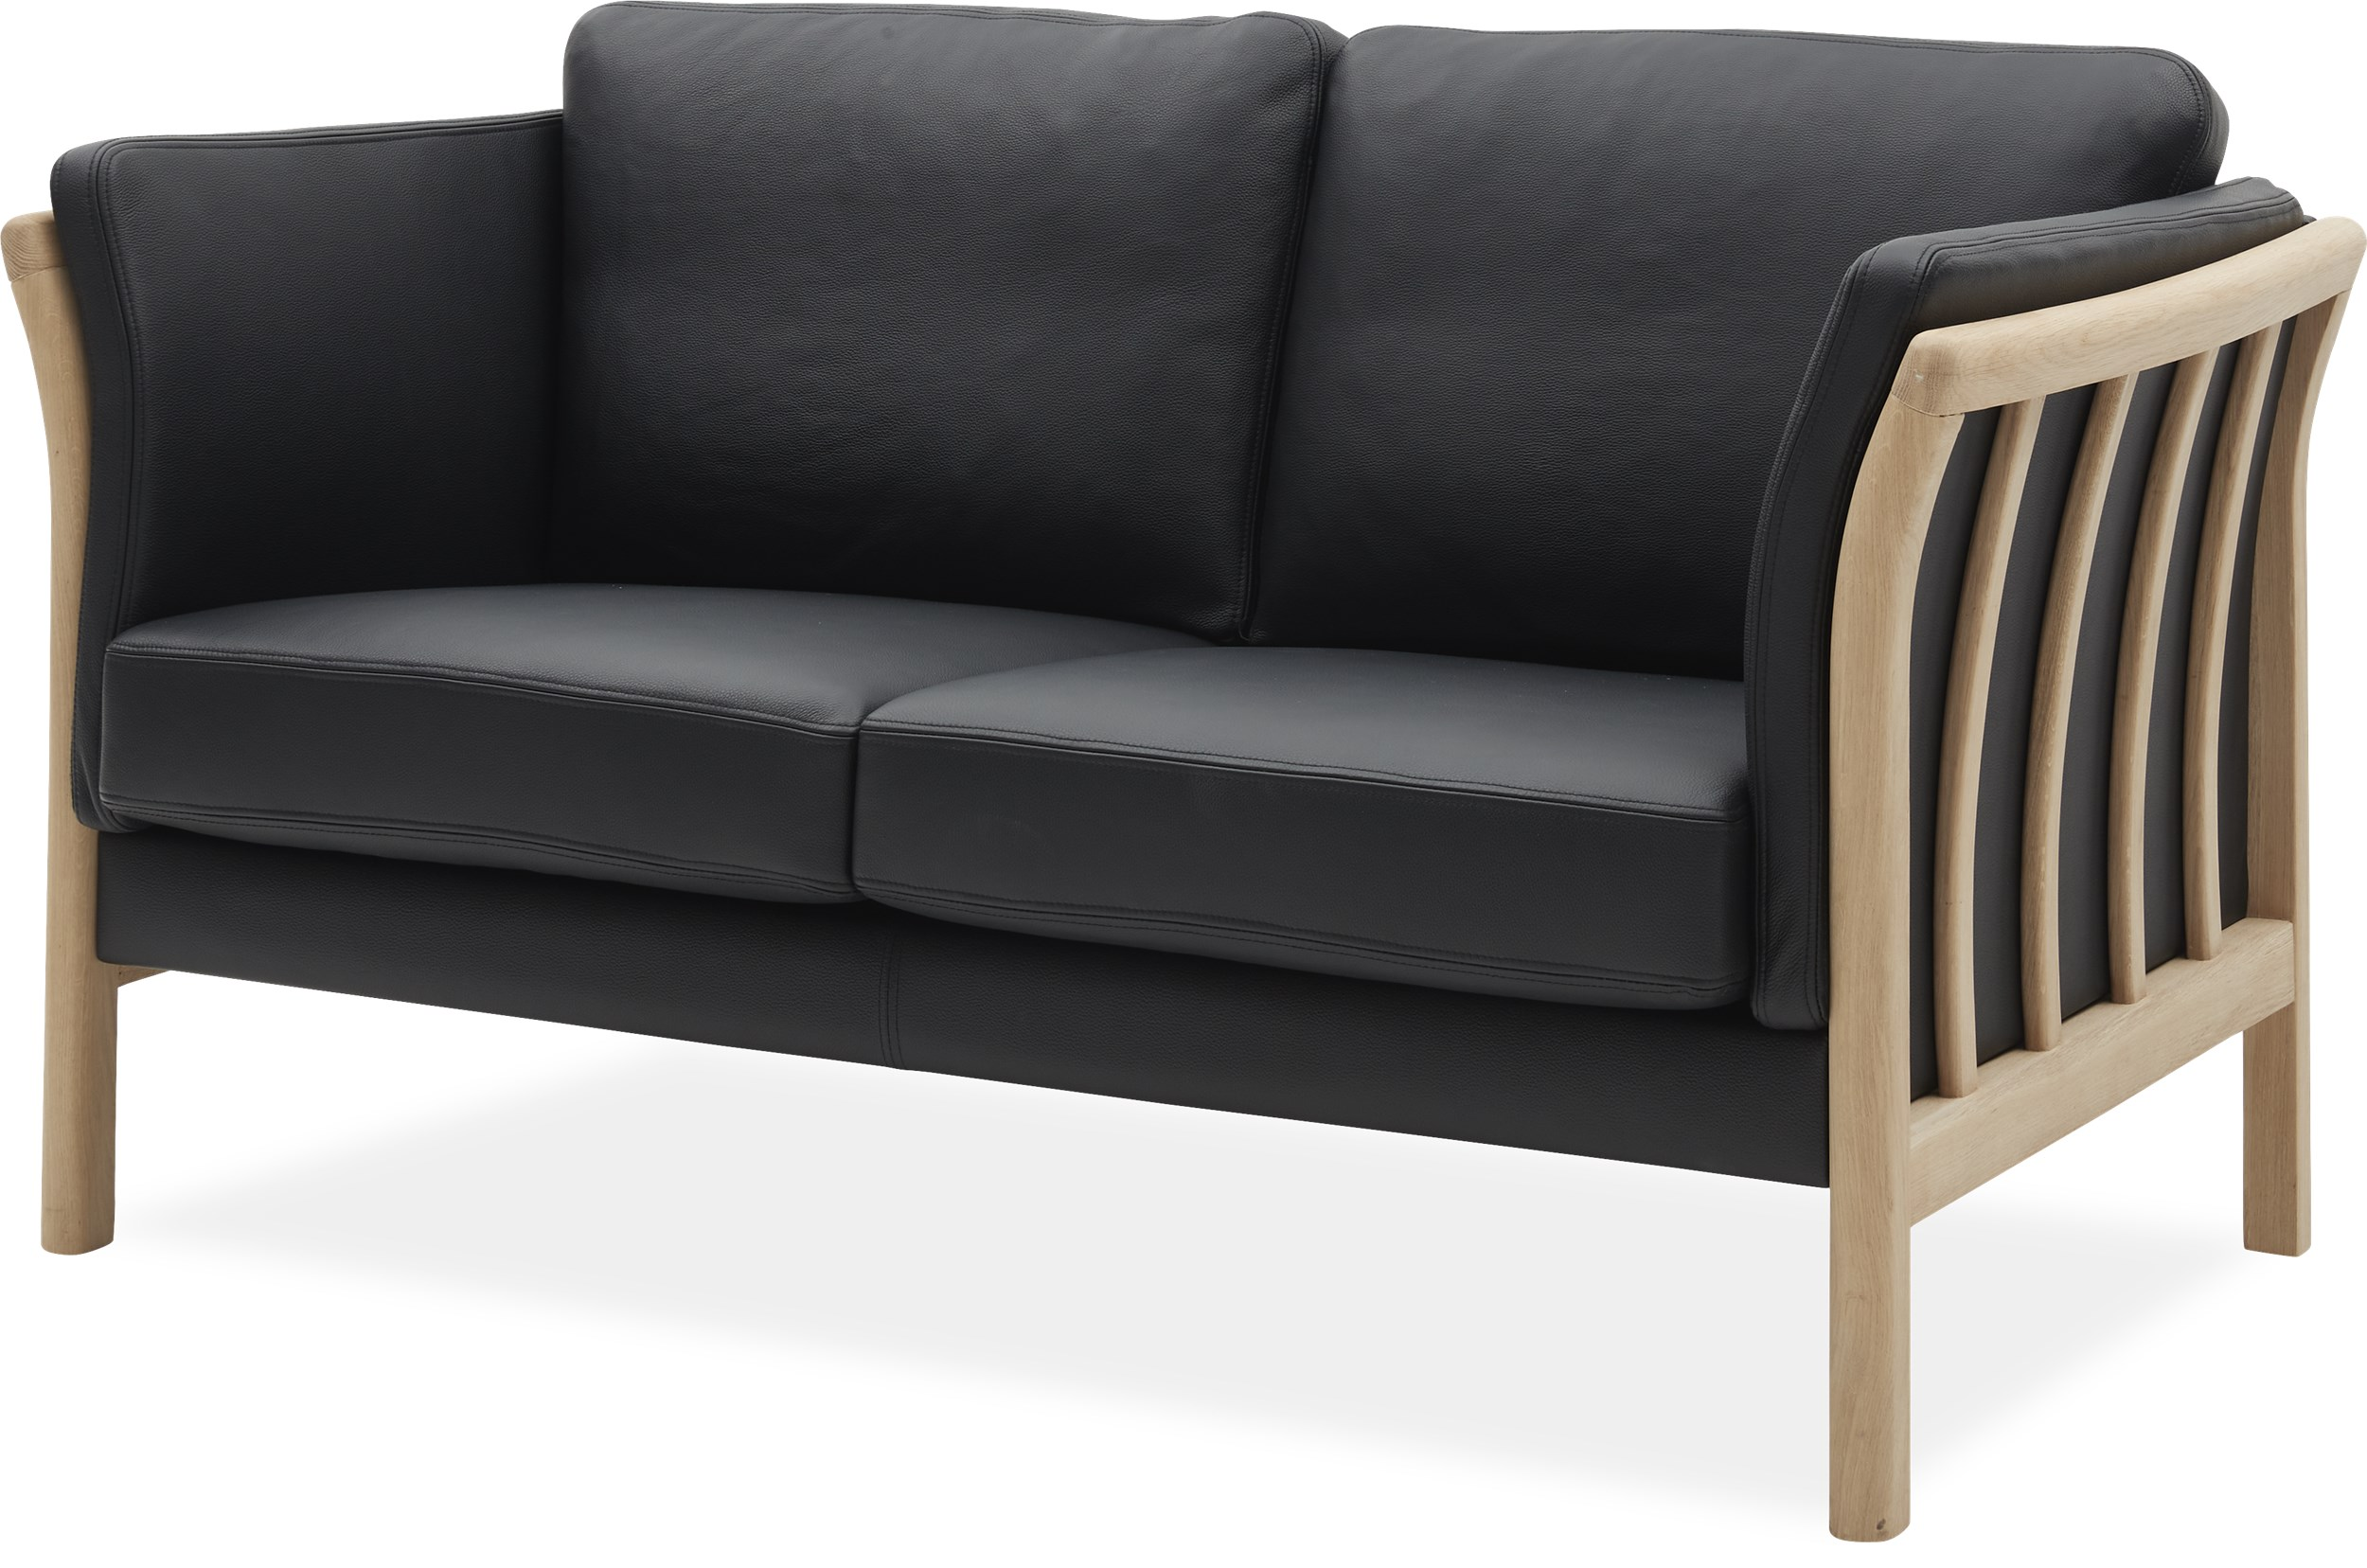 Absalon 2 pers. Sofa